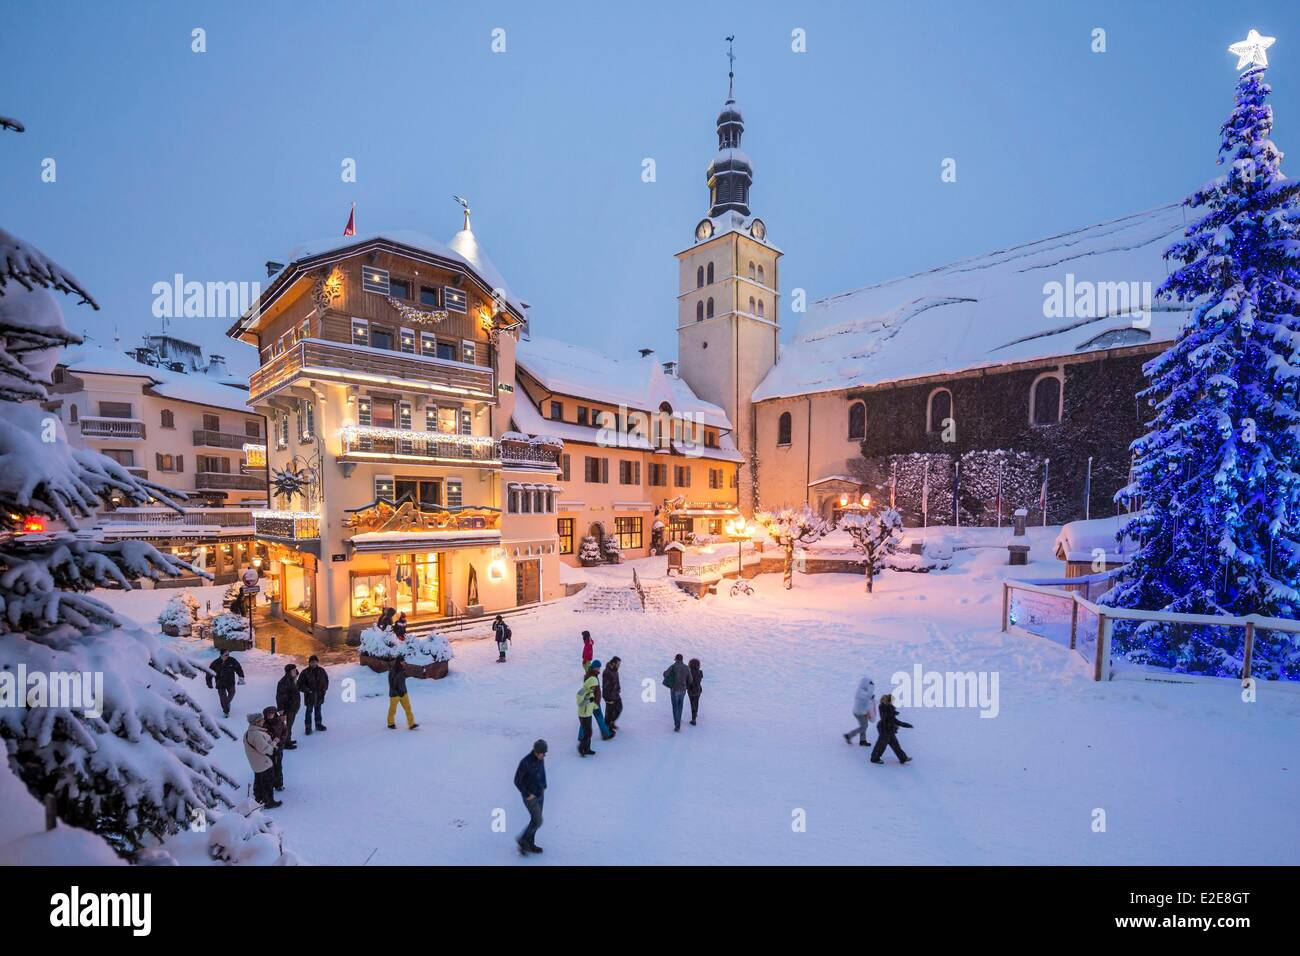 france haute savoie megeve the city center and the maison allard stock photo 70384856 alamy. Black Bedroom Furniture Sets. Home Design Ideas